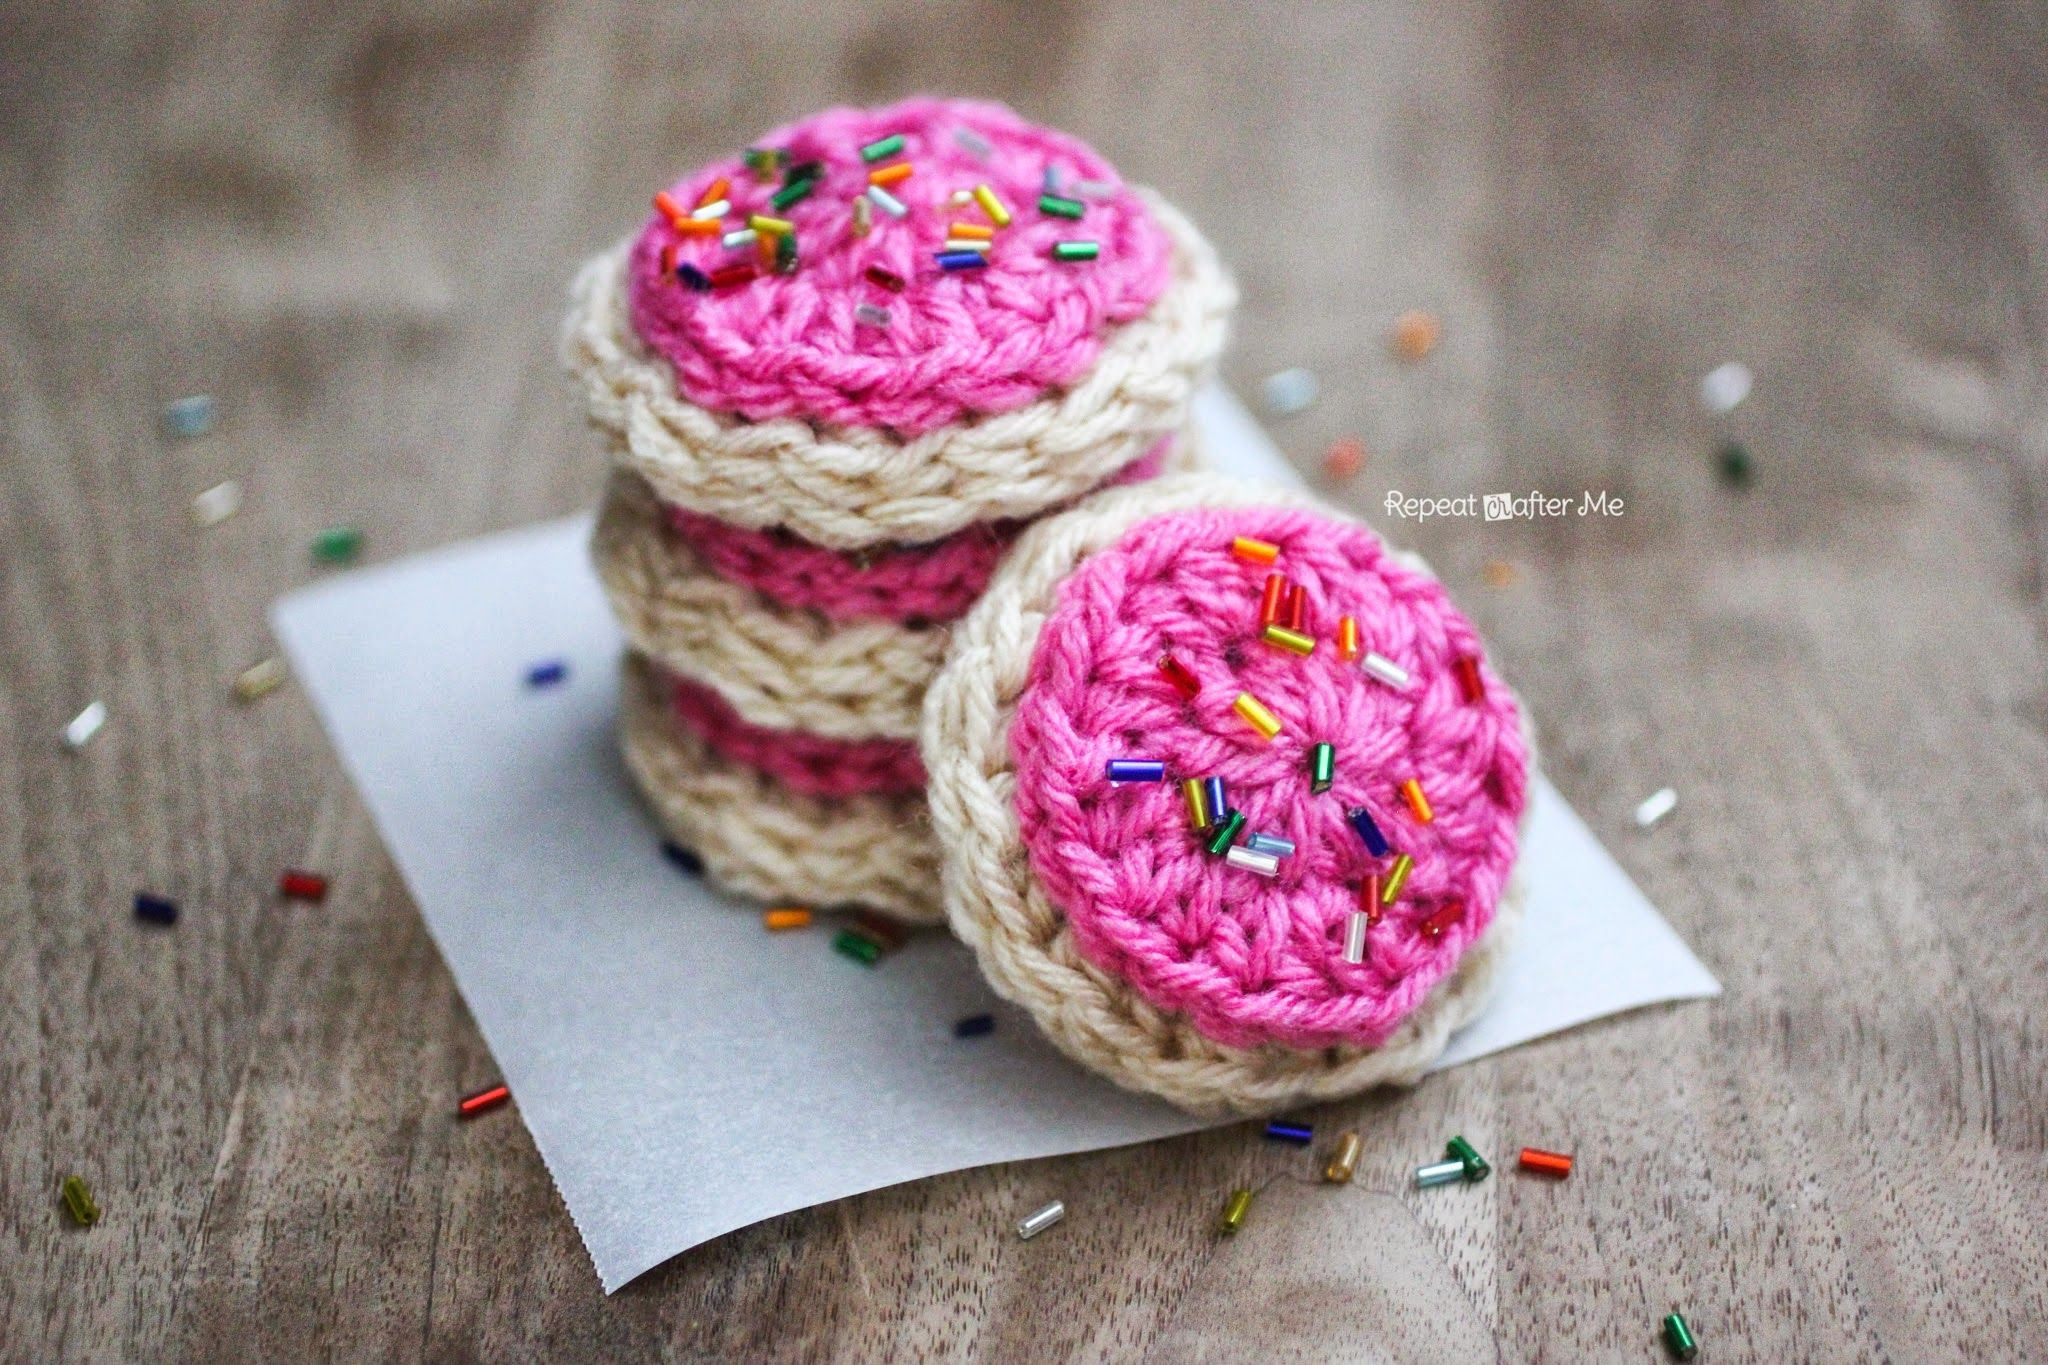 Repeat crafter me frosted crochet cookie pattern tutorial thanks repeat crafter me frosted crochet cookie pattern tutorial thanks so xox bankloansurffo Choice Image